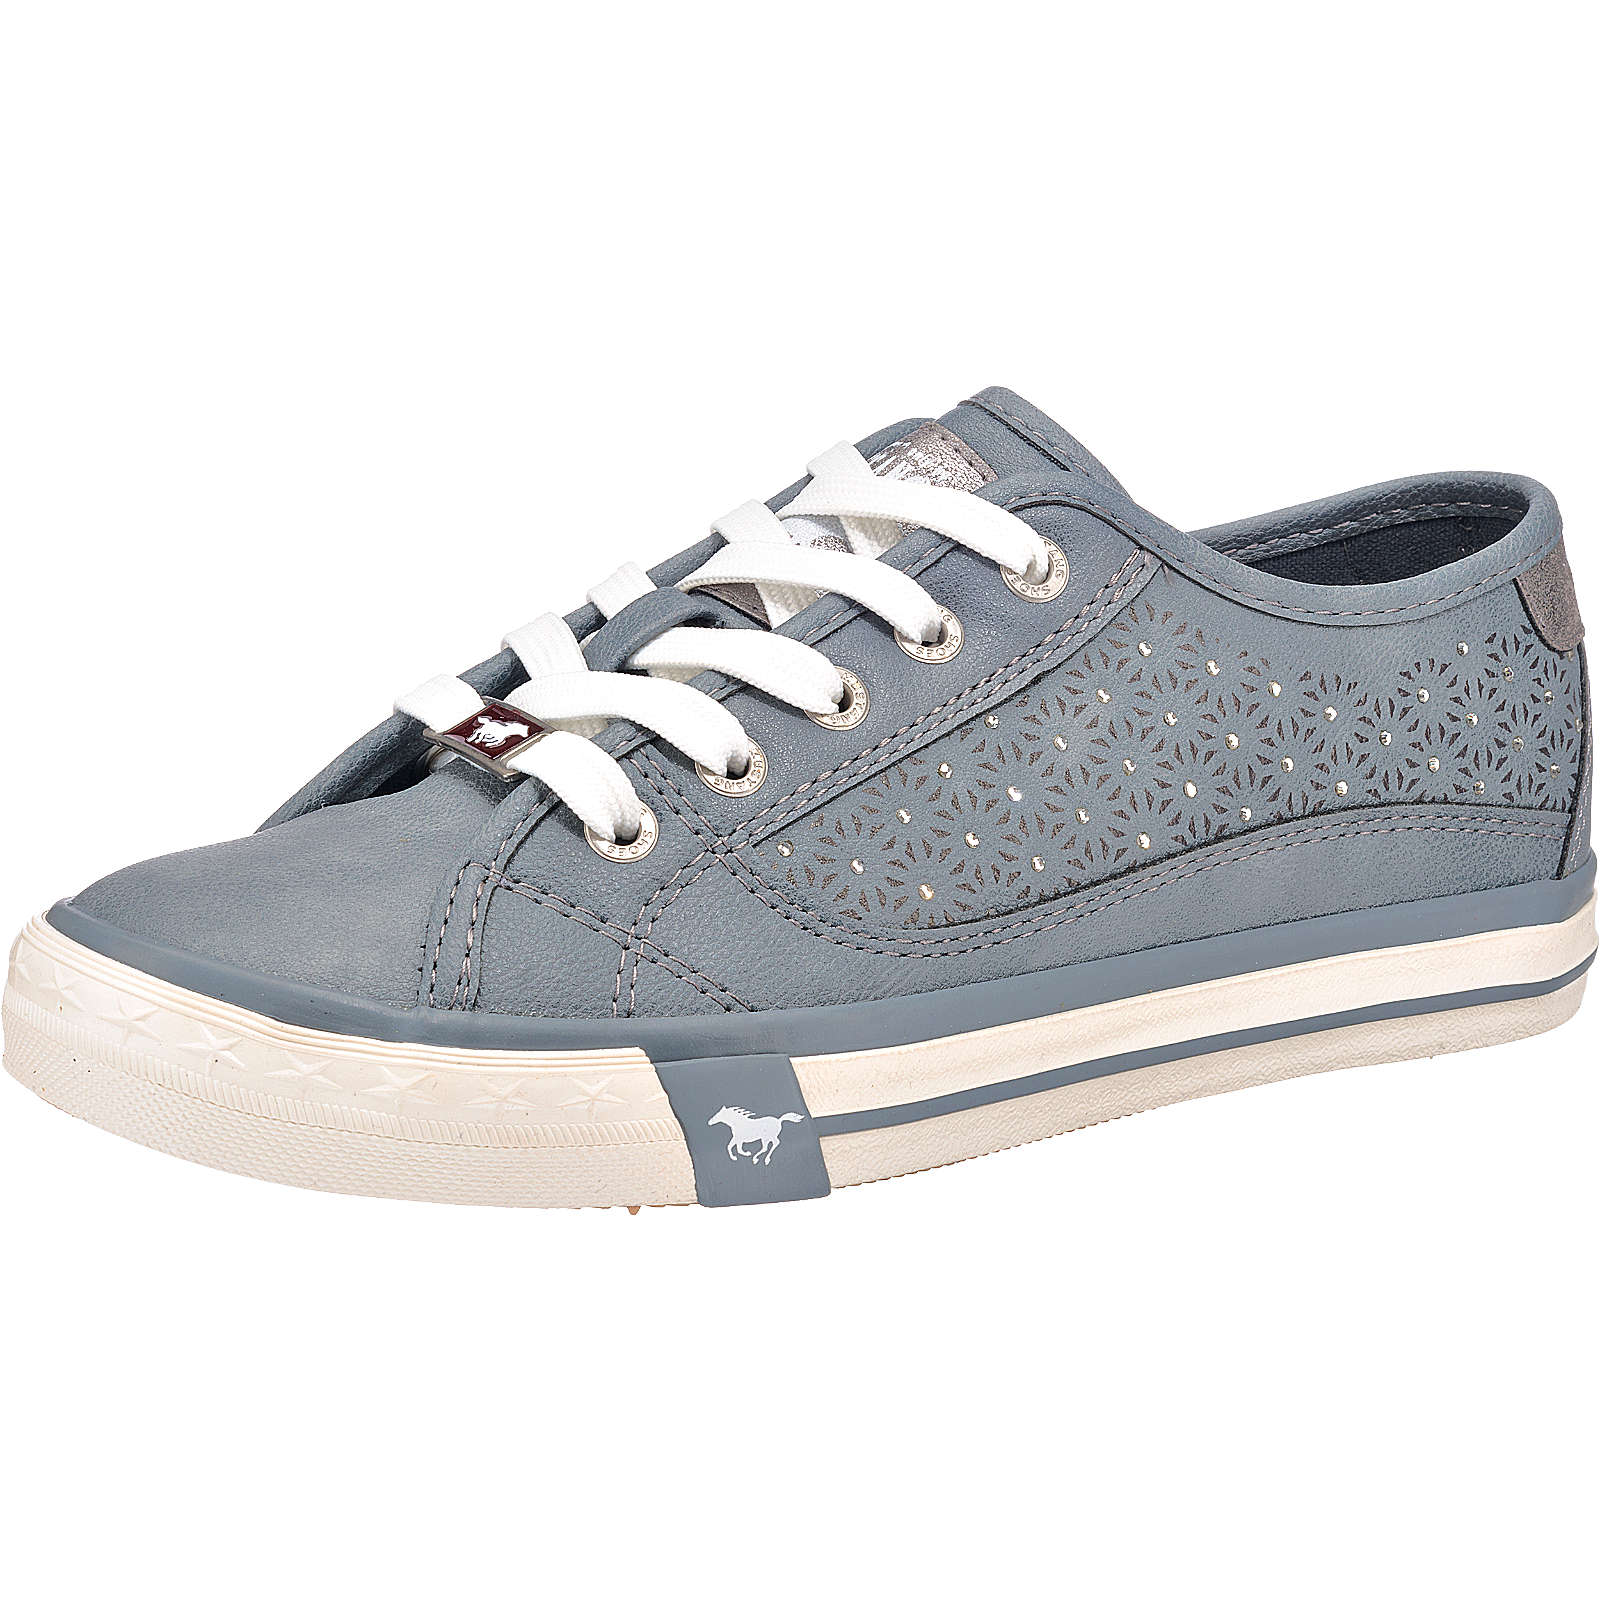 MUSTANG Sneakers Low blau Damen Gr. 37